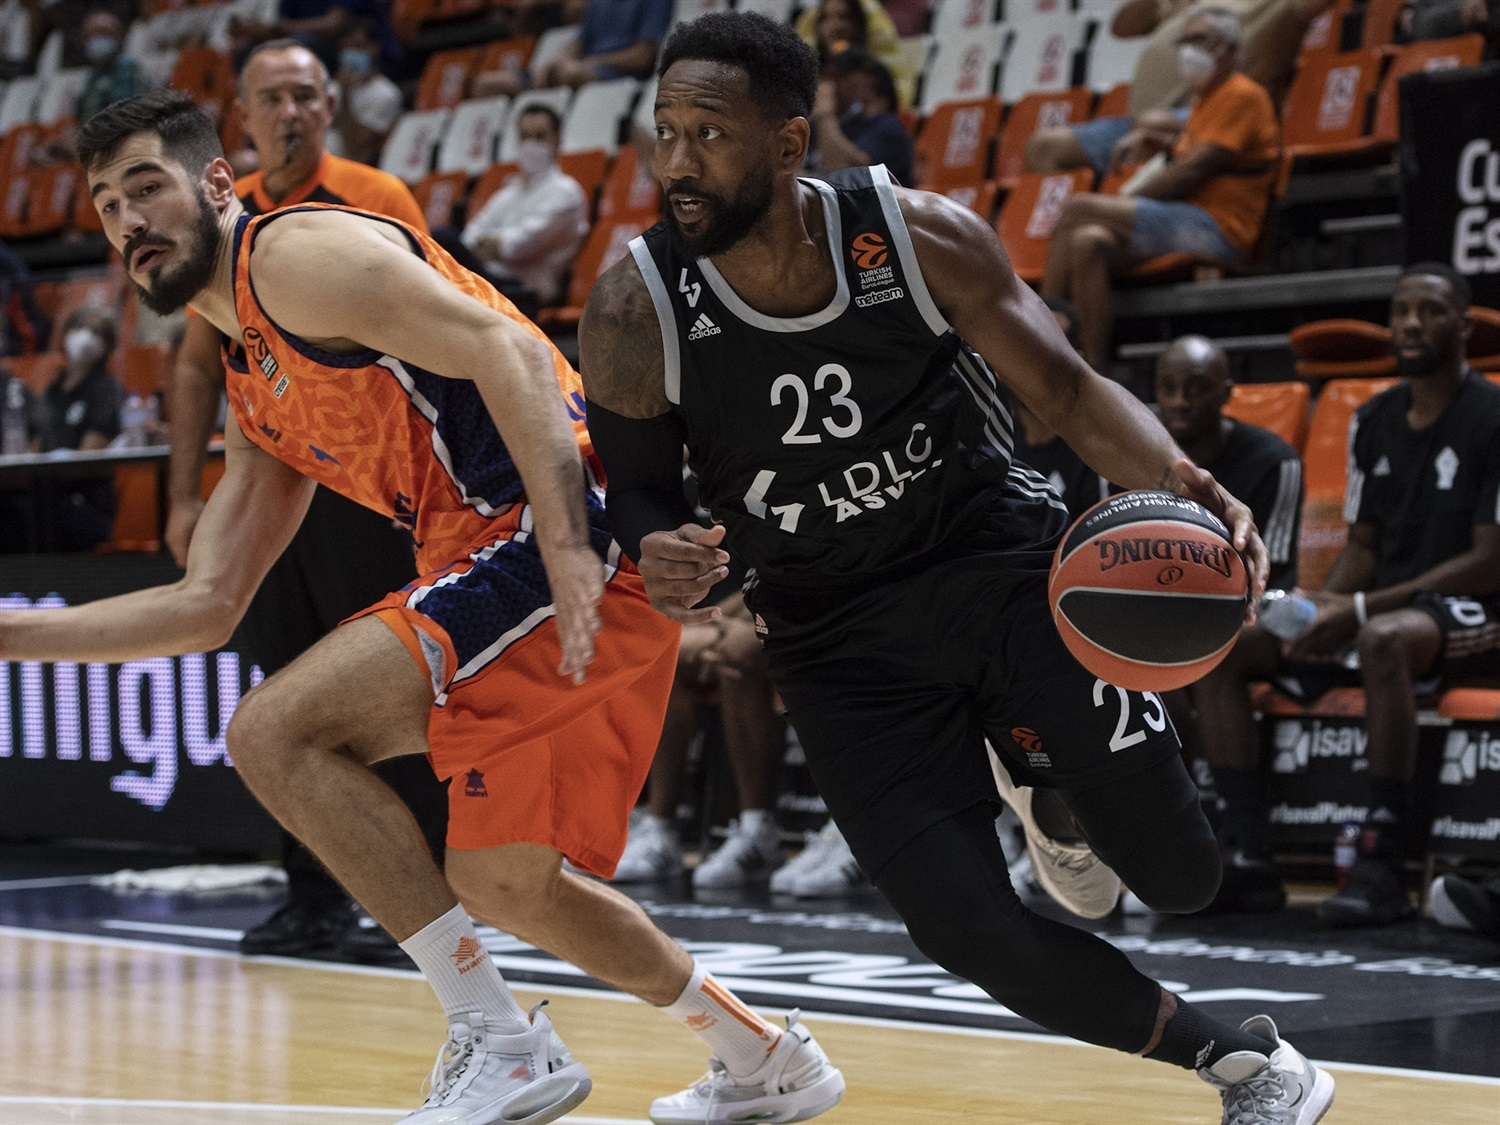 David Lighty - LDLC ASVEL Villeurbanne - Preseason Tournament Valencia 2020 - EB20